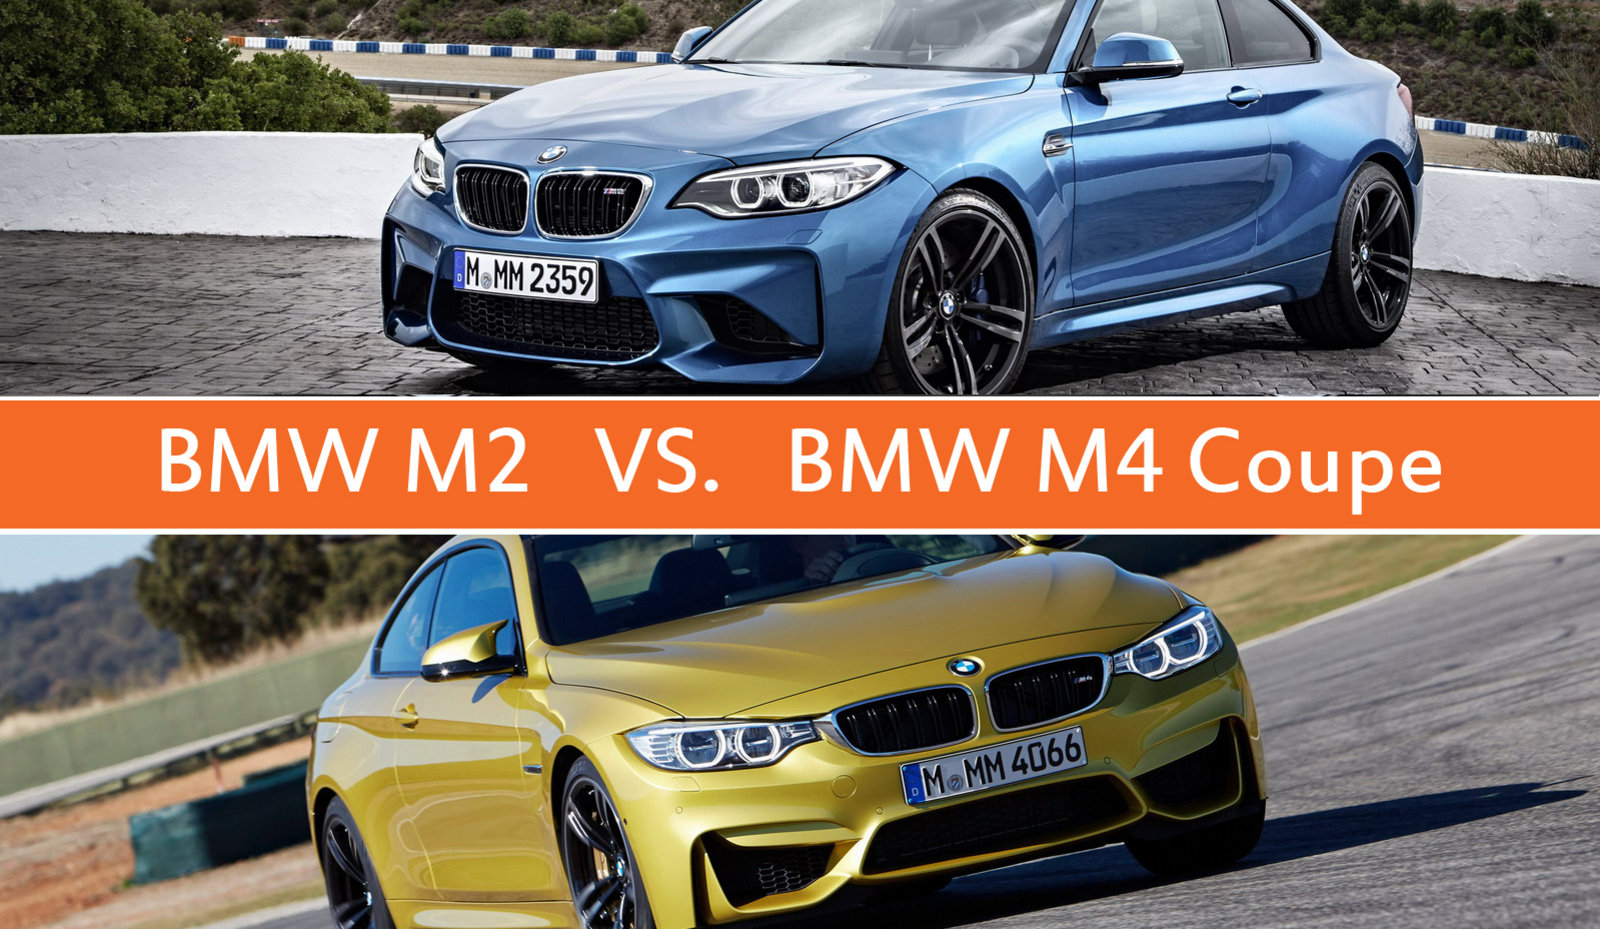 bmw m2 vs bmw m4 news gallery top speed. Black Bedroom Furniture Sets. Home Design Ideas